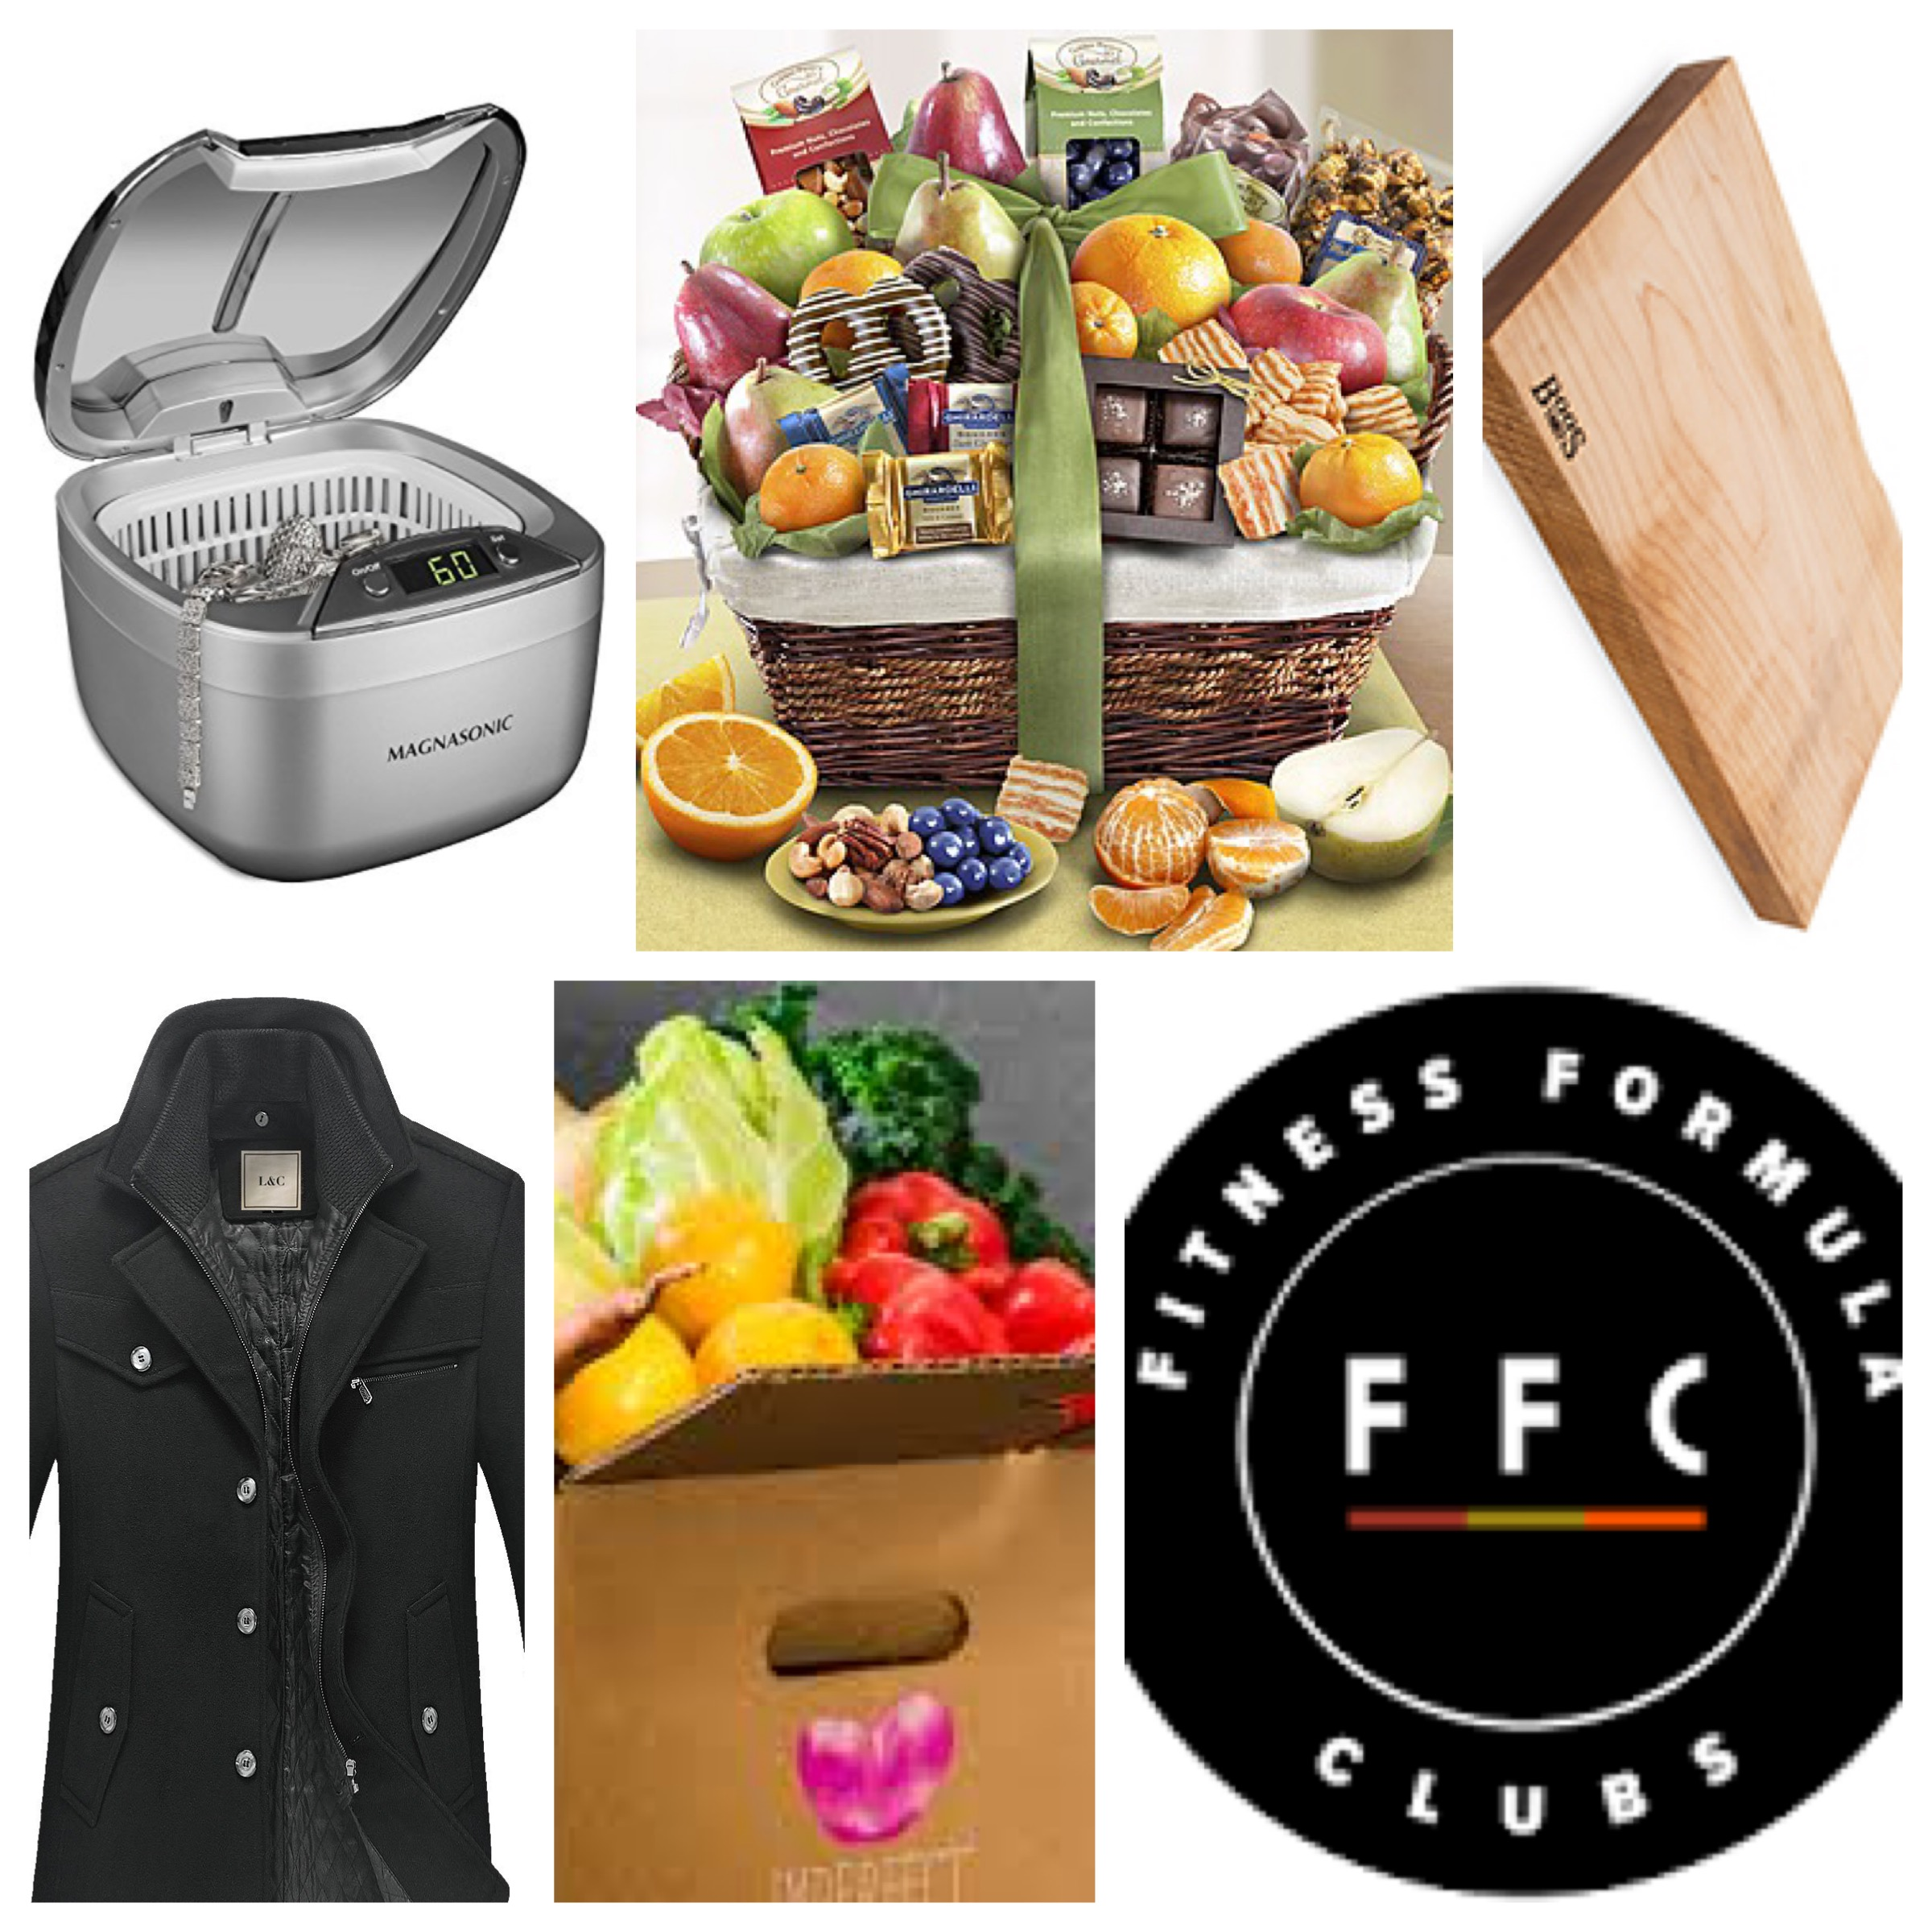 """valentines day gift guide - for her:the magasonic jewelry cleaner for the jewelry lover who already has enough jewelry (but can you really ever have enough ?)for him & her: 1-800 baskets use code """"JACKIE20"""" for 20% off site wide!for those who love to cook: boos cutting boardfor him: leather & cotton quilted short trench coatfor the chicago folk -those that need a nicer gym membership :FFC GYM MEMBERSHIP for a free month of fitnessuse my name """" Jackie Saland"""" as your referring member.for those that eat their veggies:imperfect produce organic fruits and veggies delivered every weekuse code """"JACKIE50"""" which offers 50% off of the first box"""